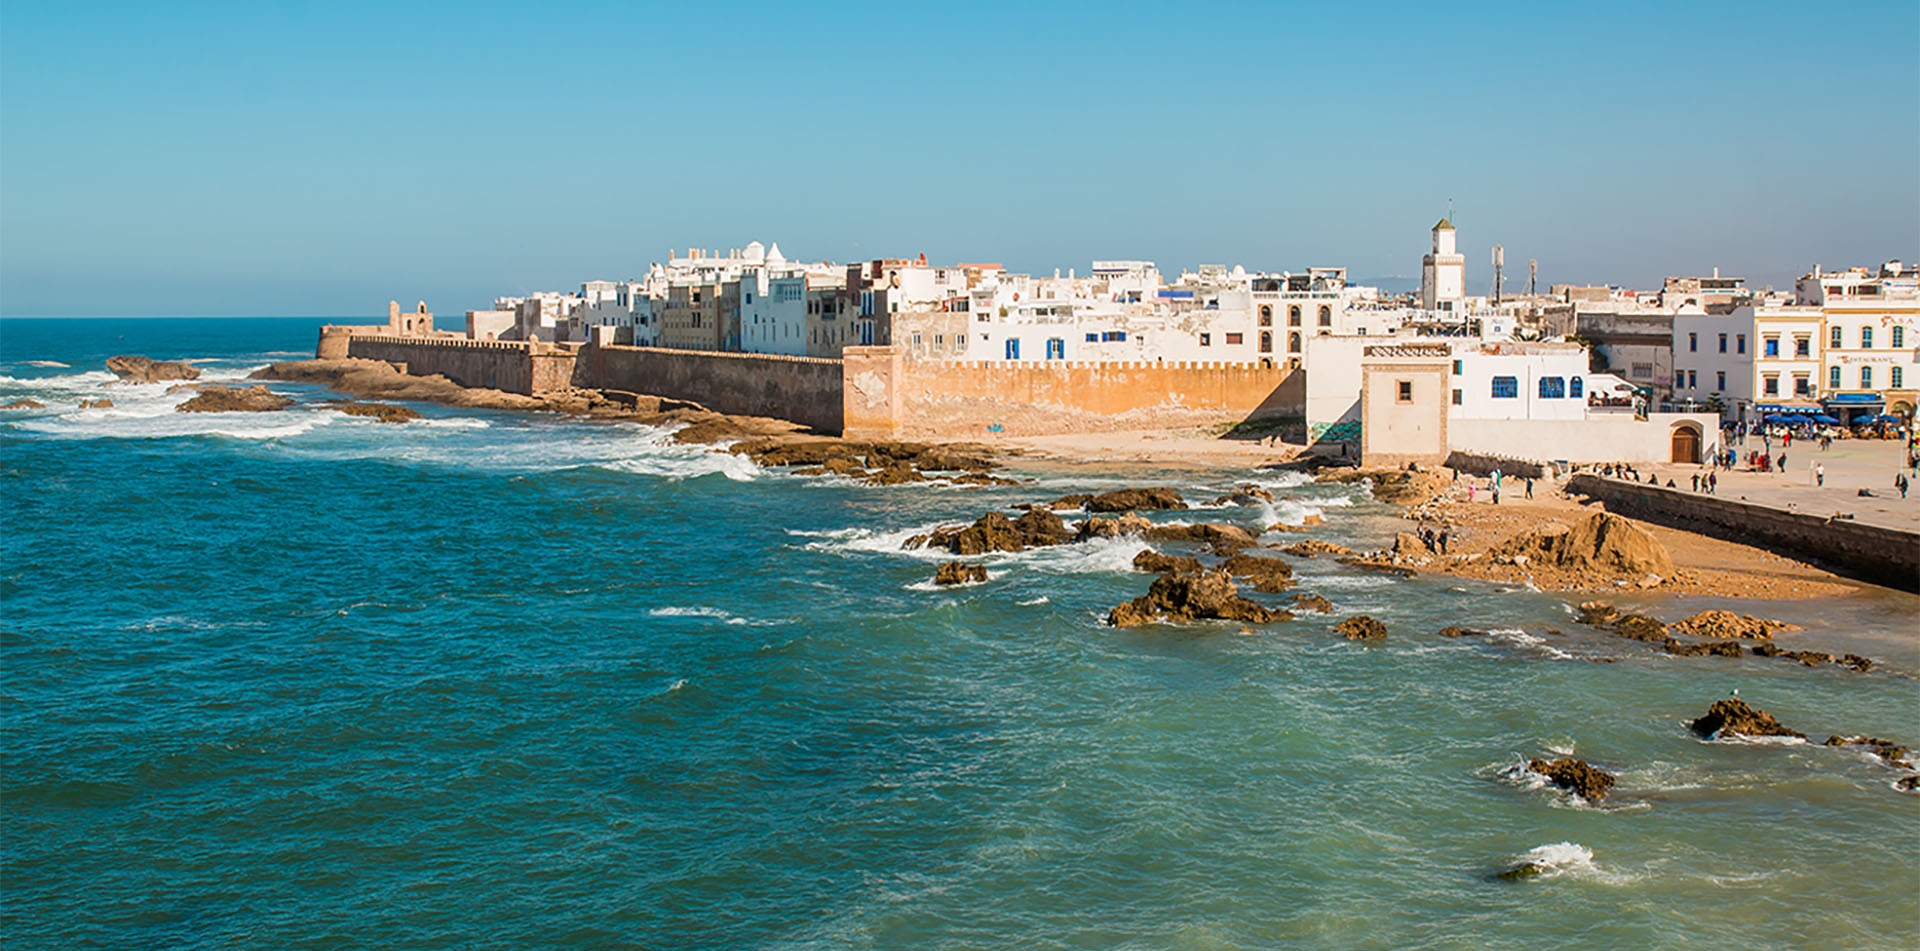 Essaouira Old City, Morocco